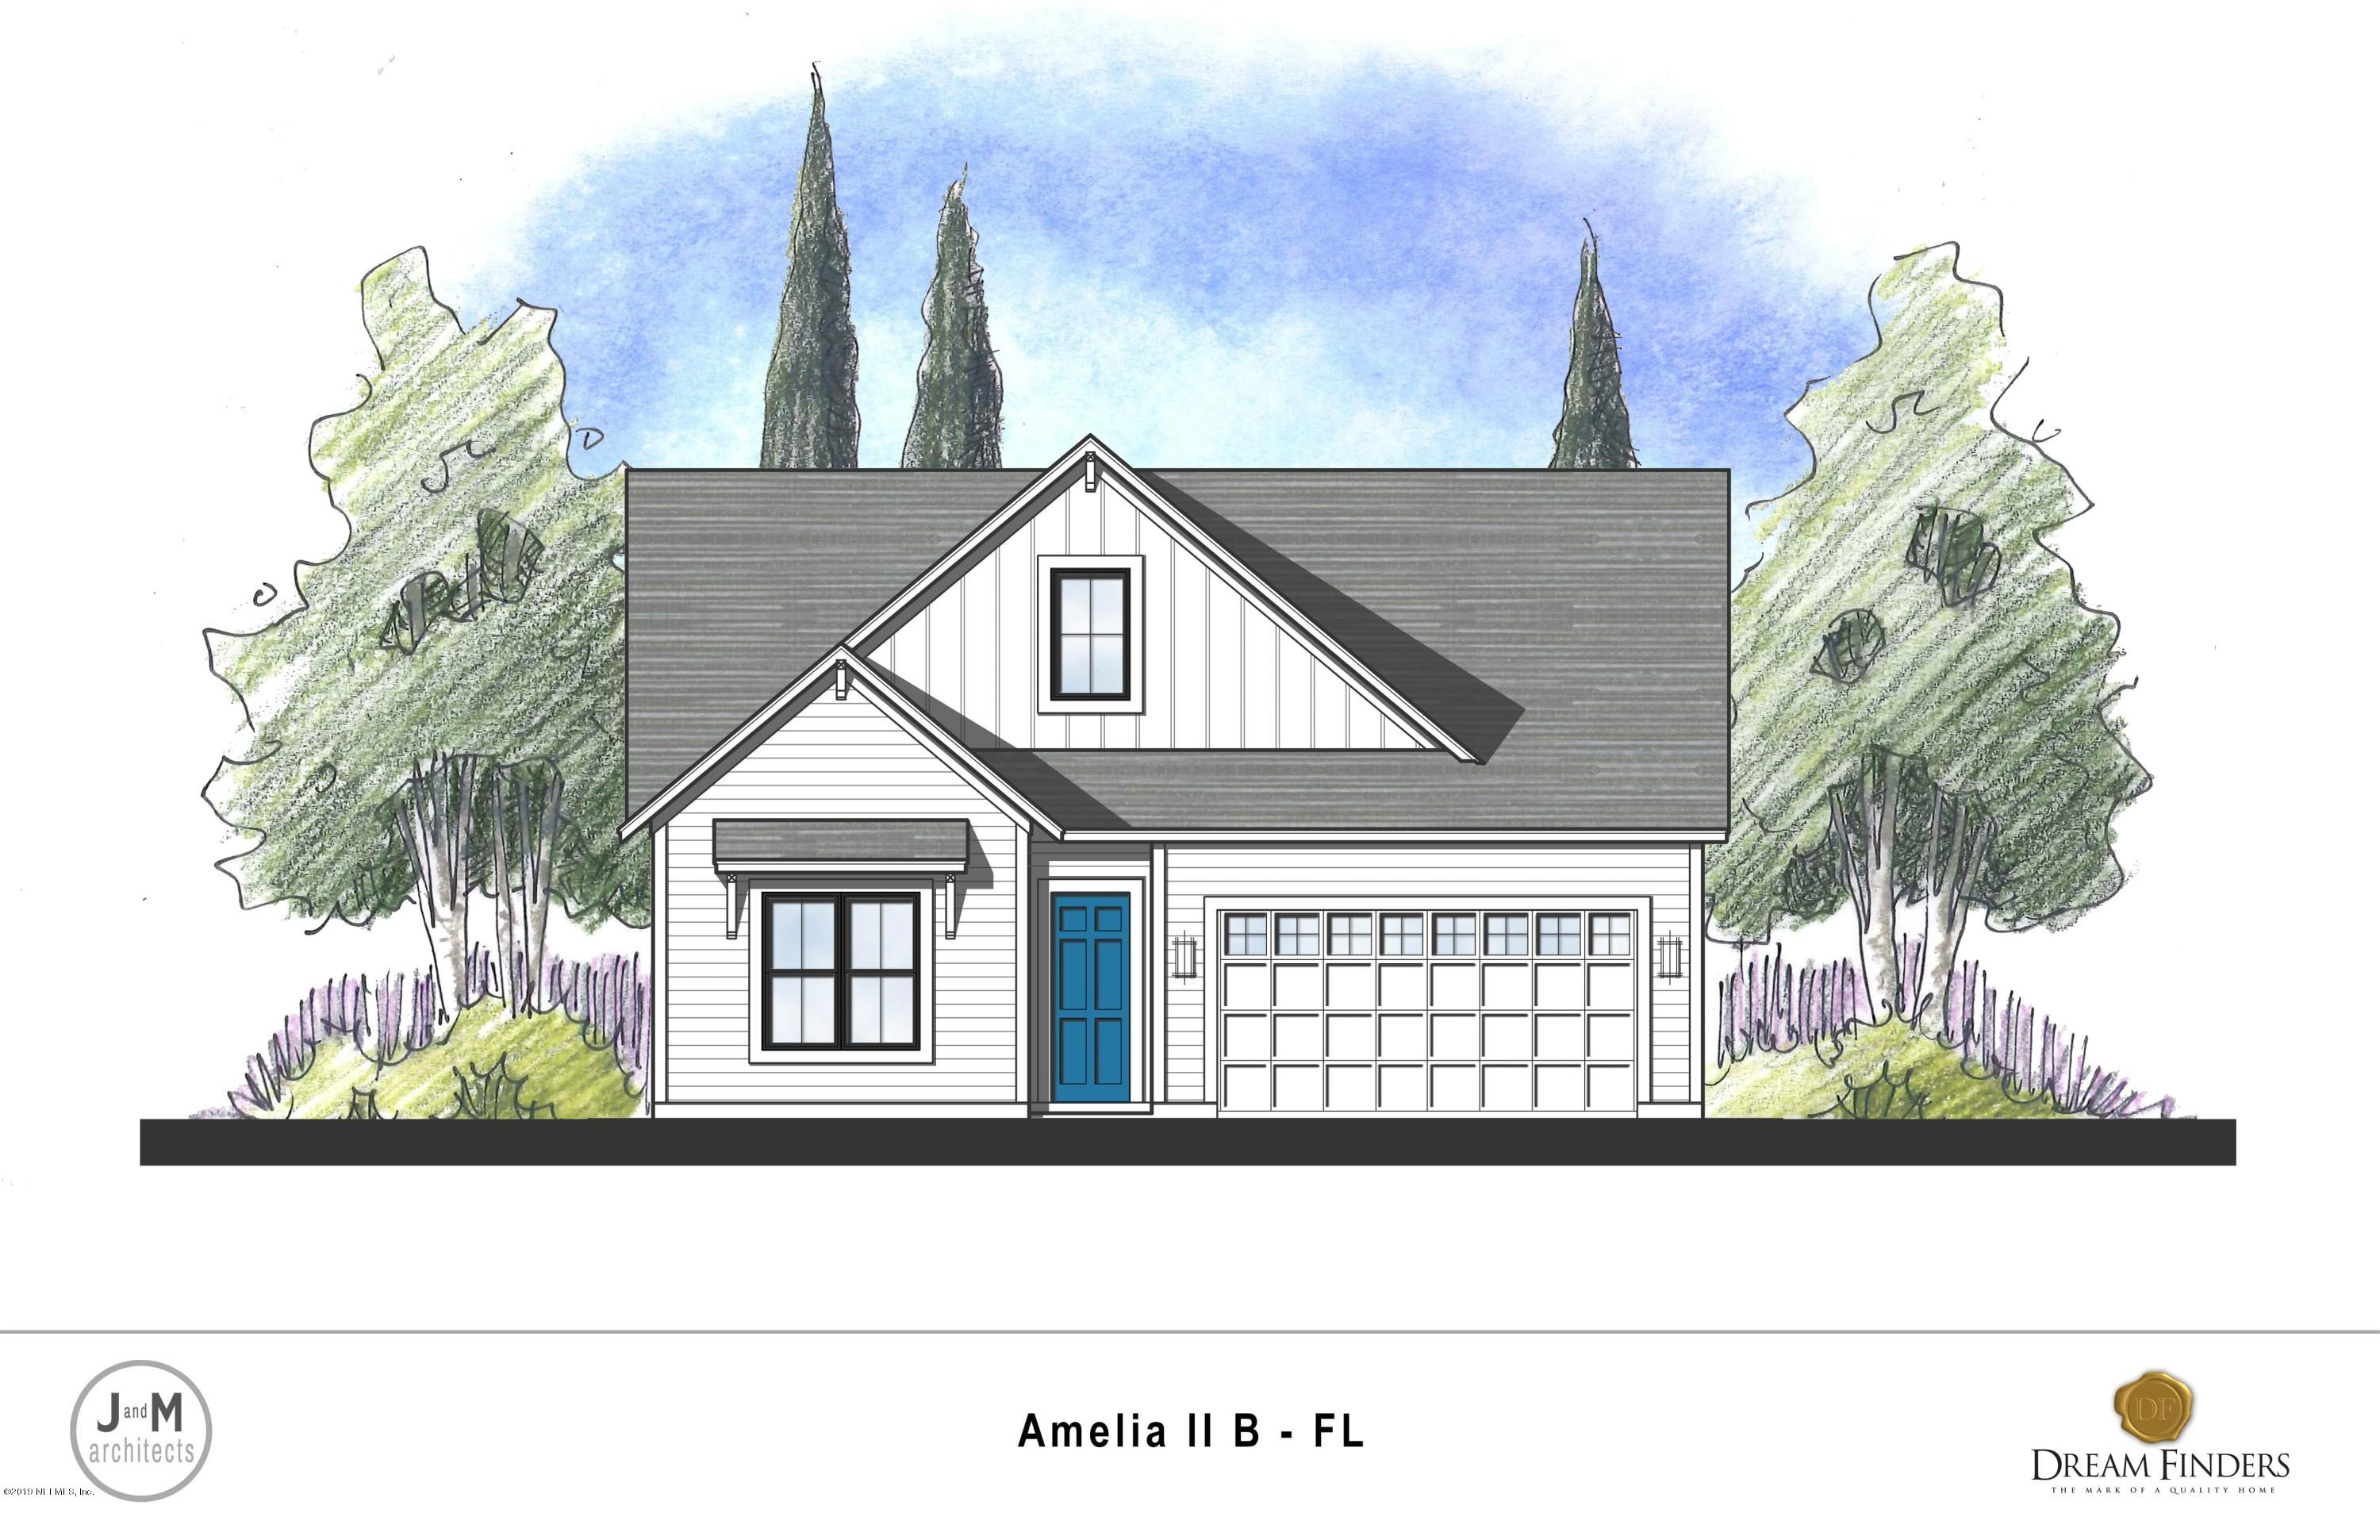 66 WHATLEY, PONTE VEDRA BEACH, FLORIDA 32082, 4 Bedrooms Bedrooms, ,3 BathroomsBathrooms,Residential - single family,For sale,WHATLEY,1016848